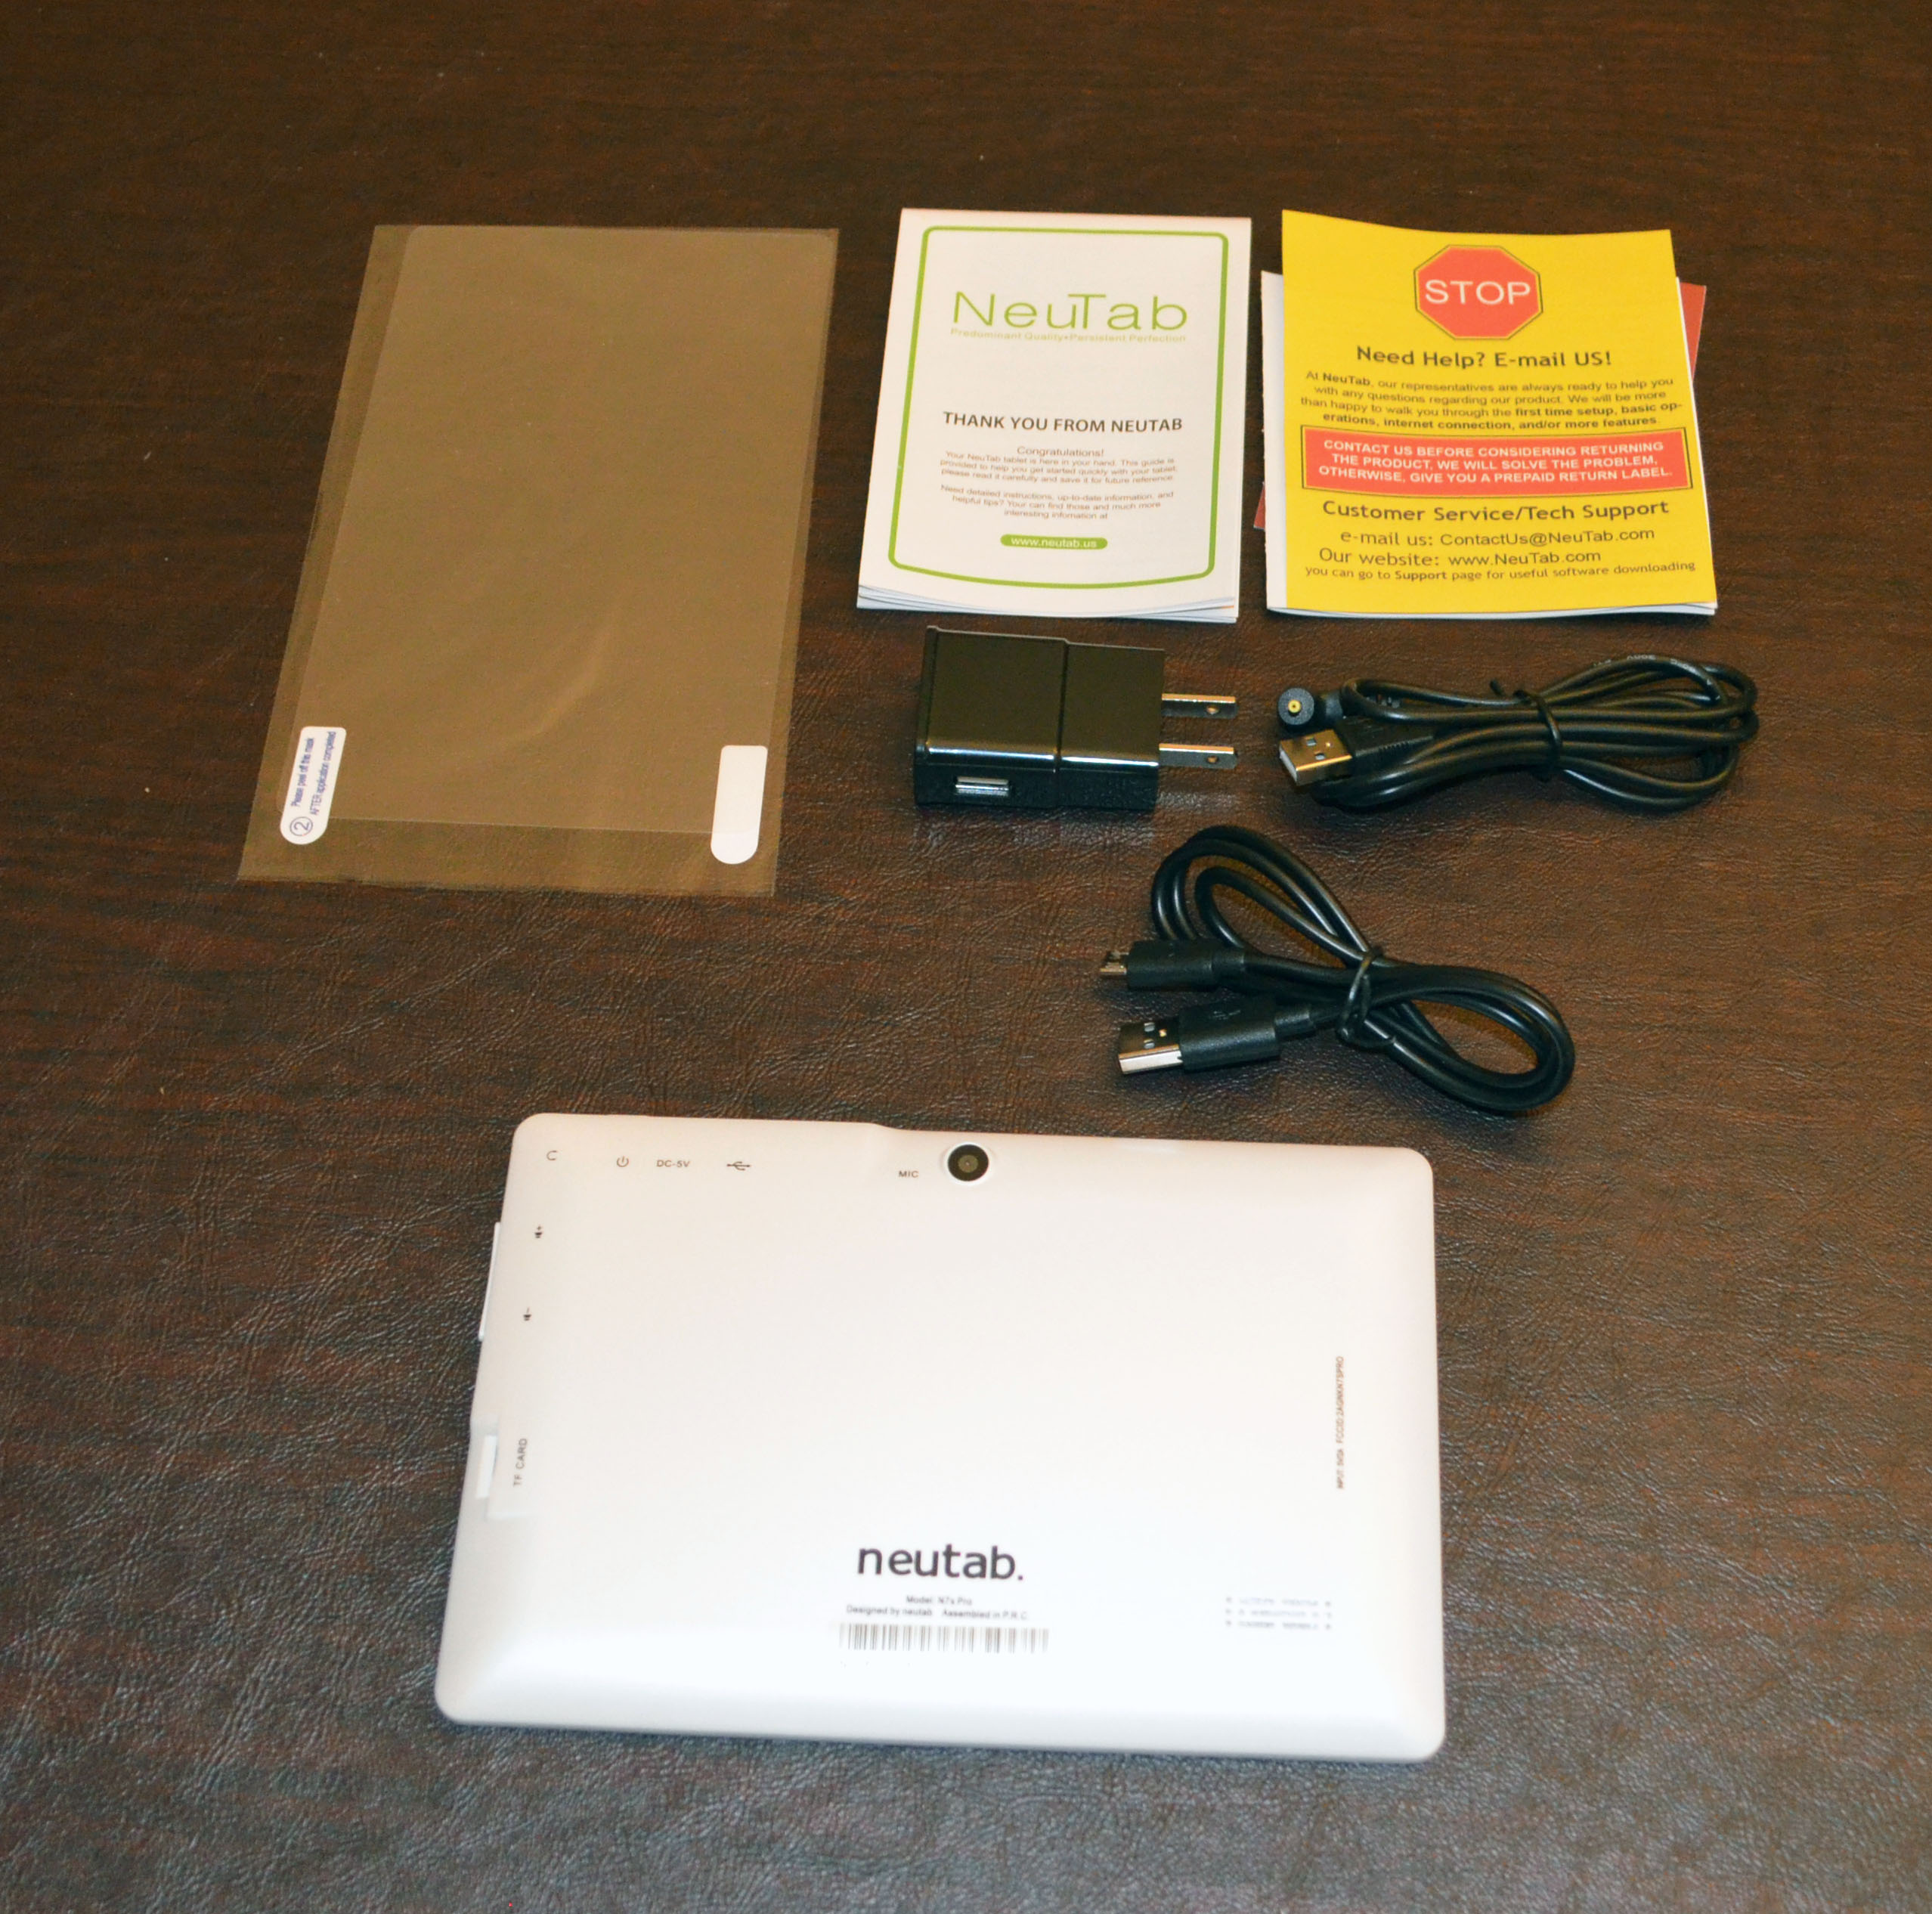 The contents and rear of the tablet.